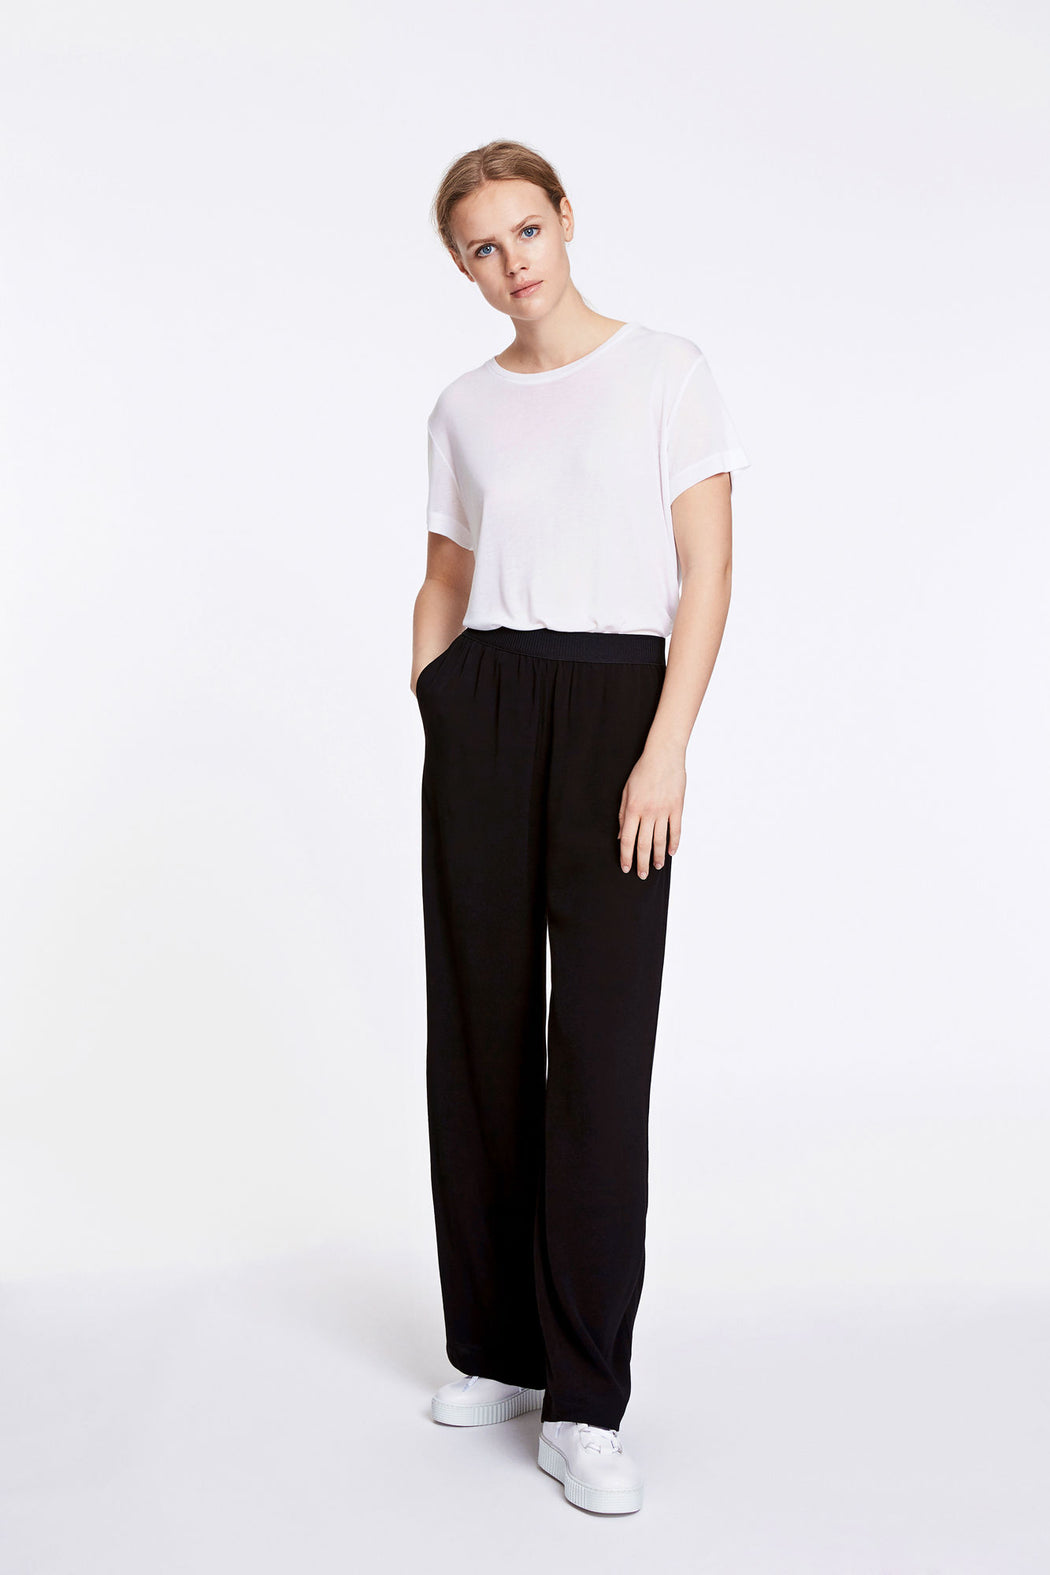 Nessie Pants Black